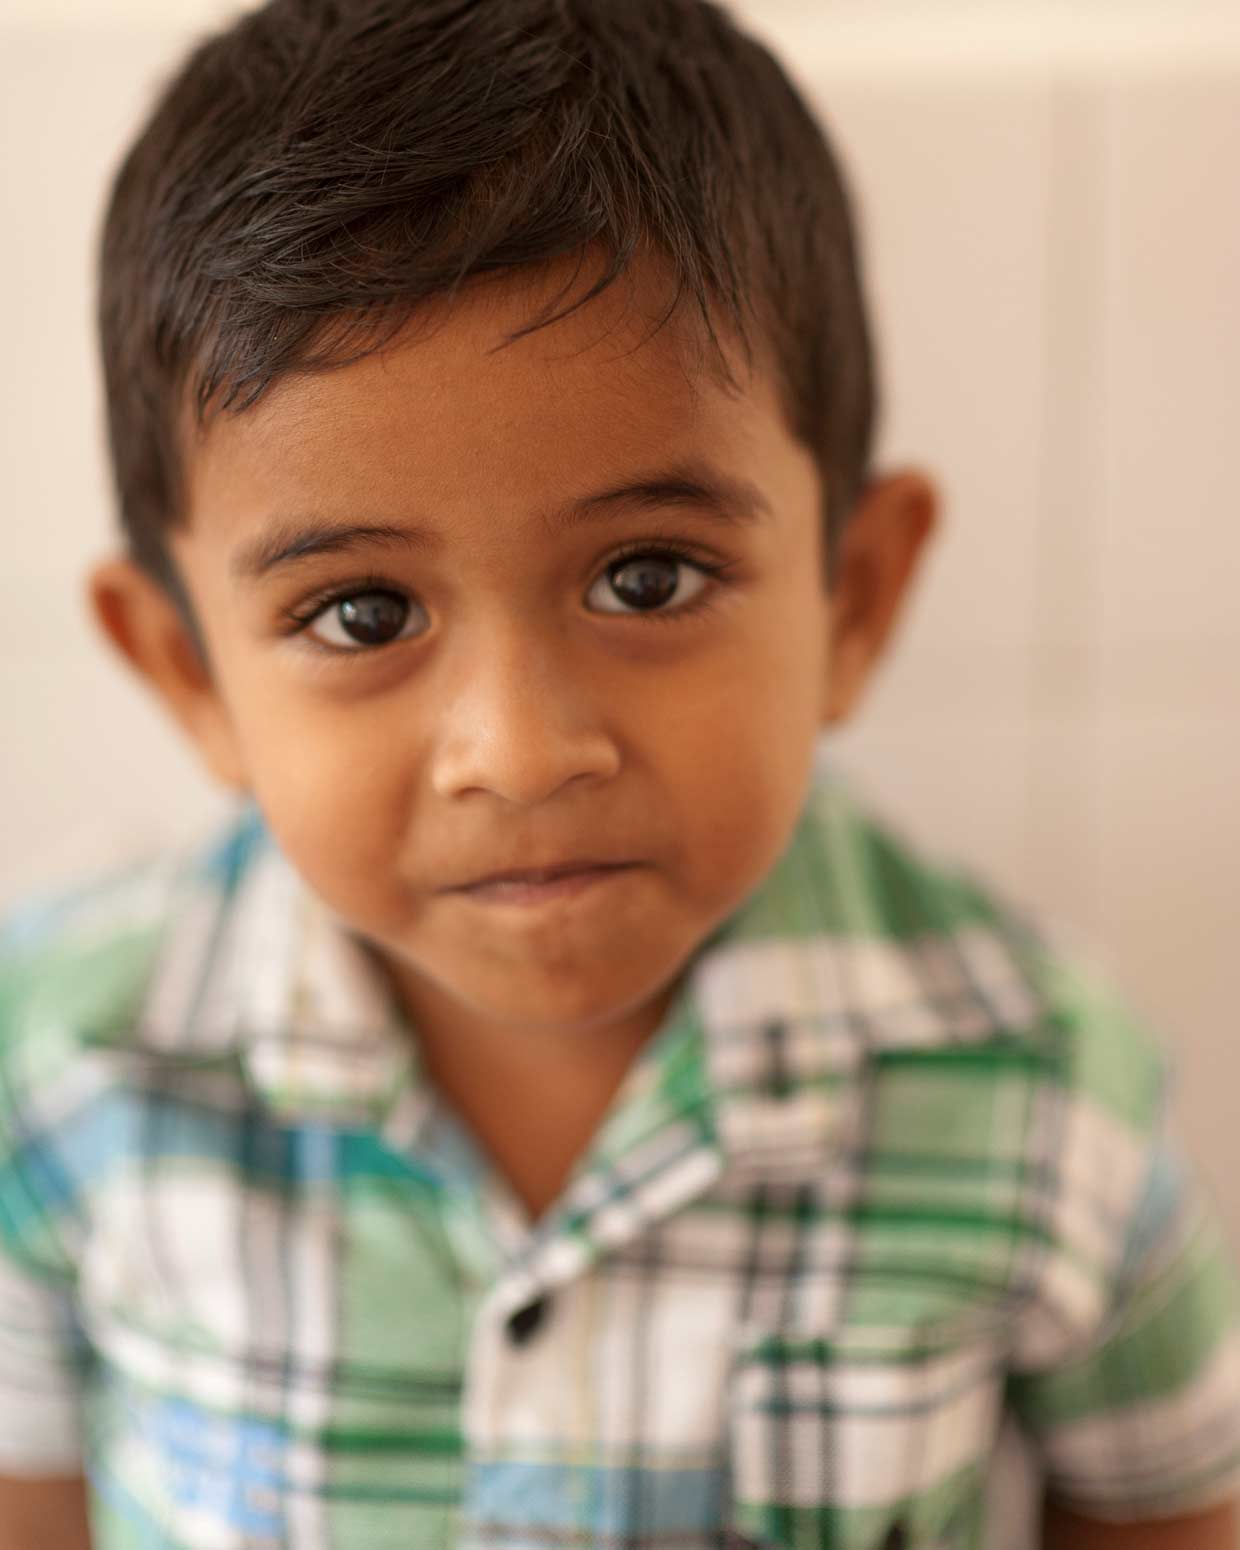 A young child at the Moratuwa MJF Foundation Centre where a comprehensive programme to address the needs of children from marginalised communities is being carried out by the MJF Charitable Foundation.